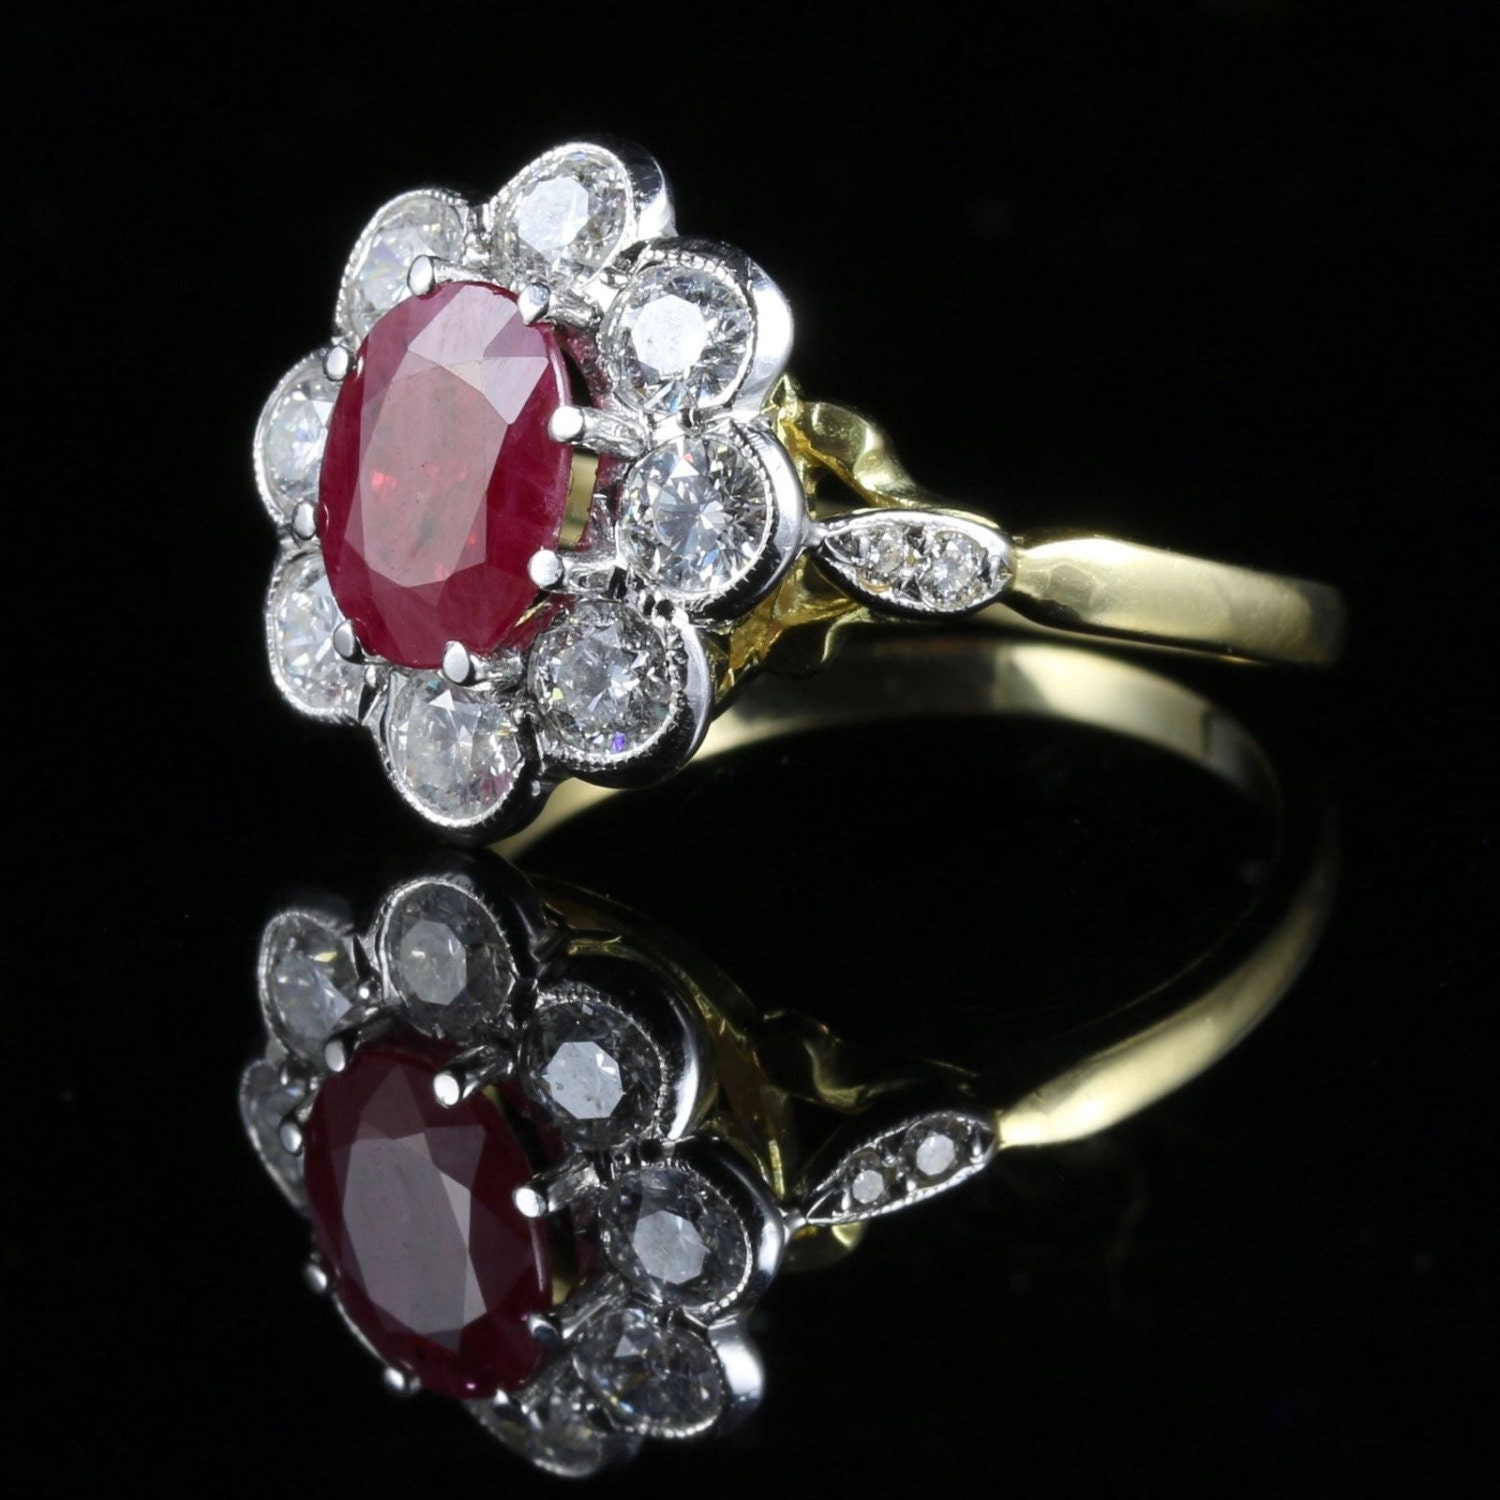 Antique Ruby  Diamond Cluster Ring 18ct Gold 1.80ct Ruby 1.20ct Diamond